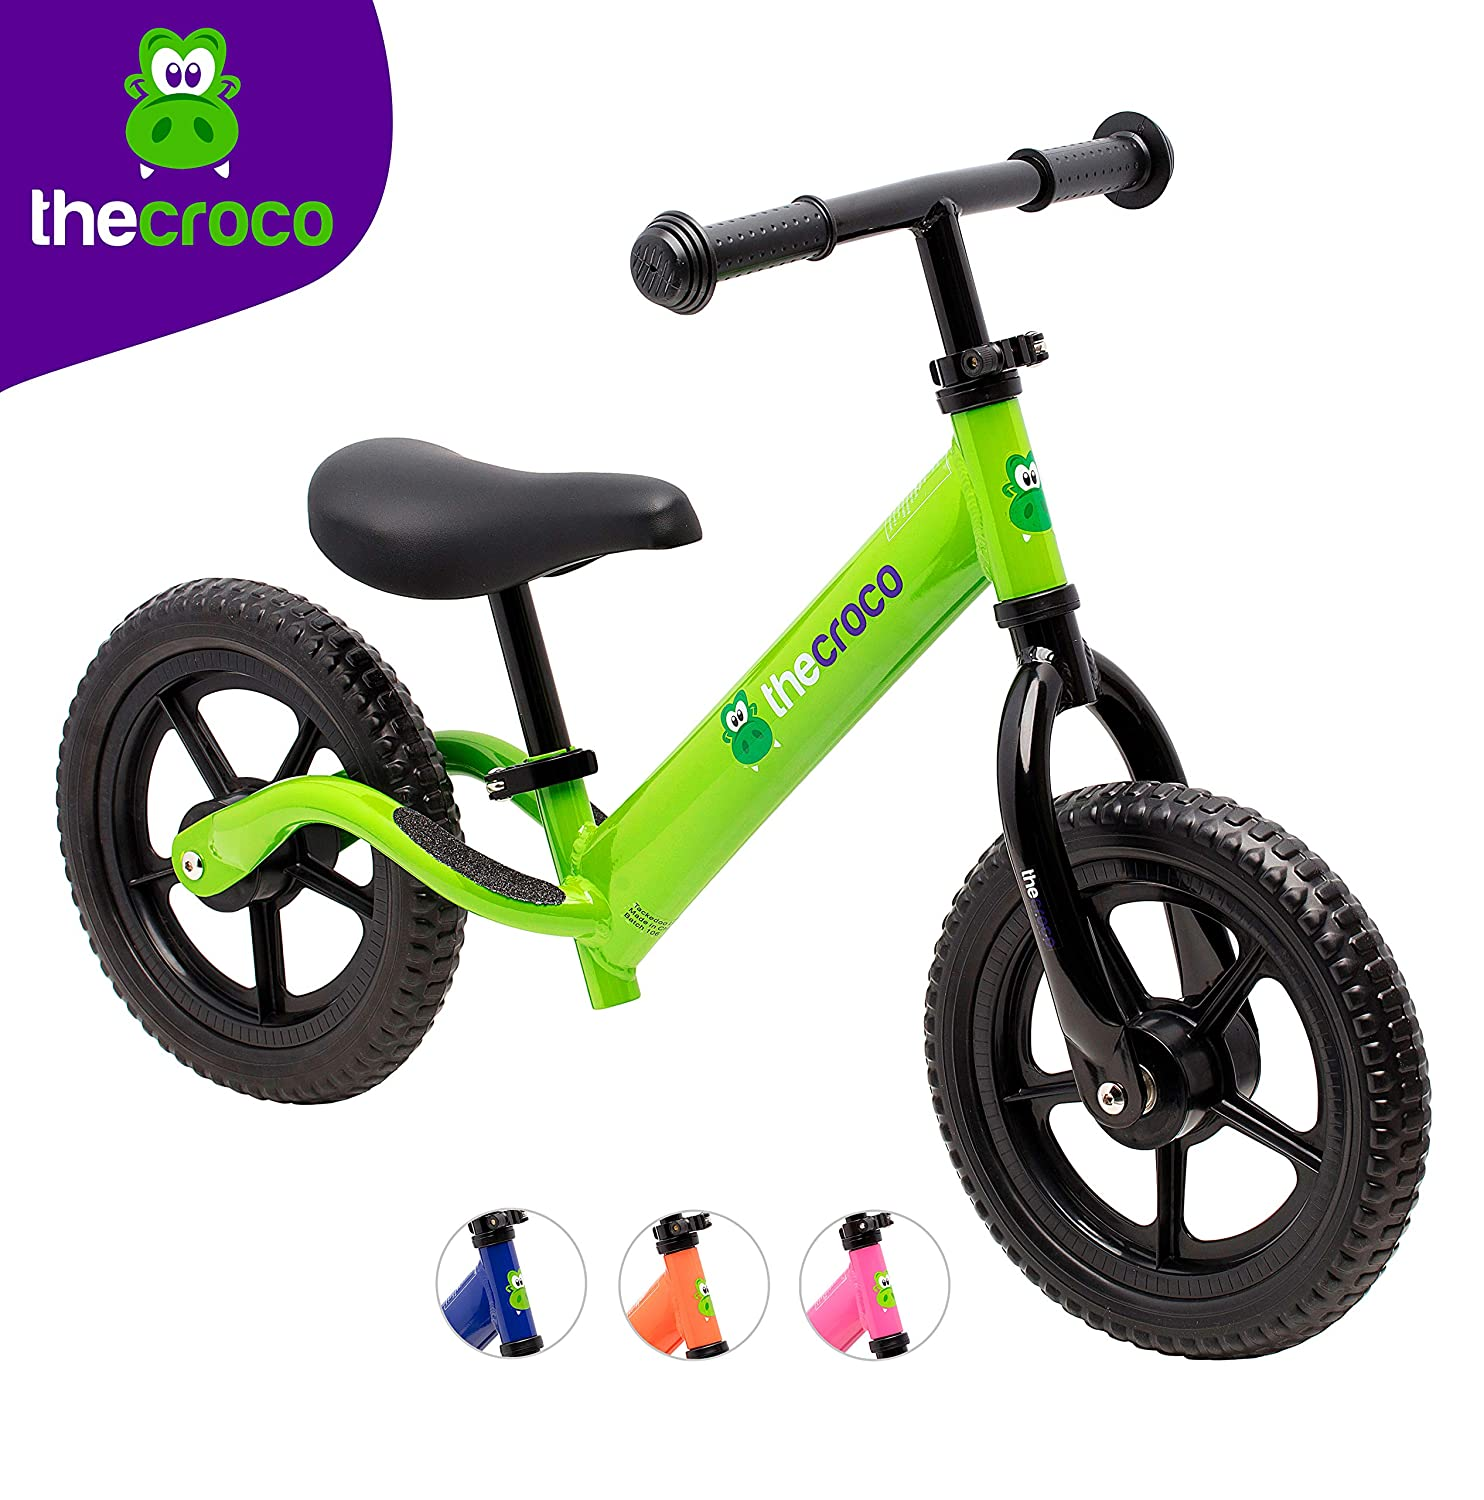 TheCroco Aluminum Lightweight Balance Bike for Toddlers and Kids